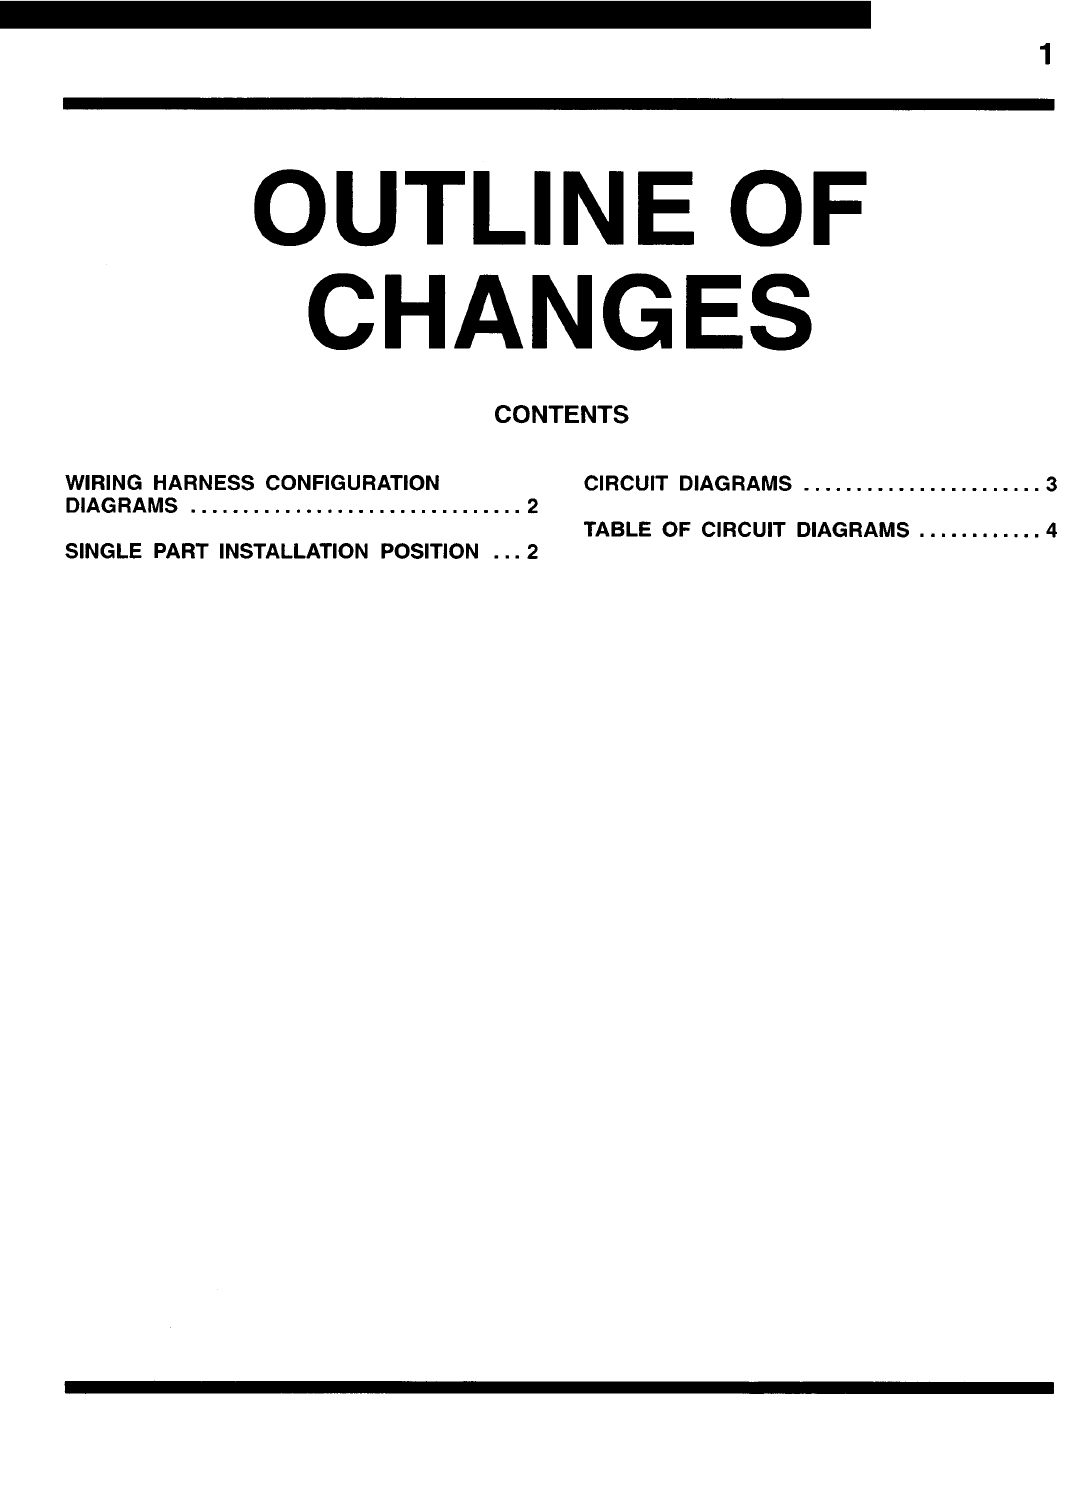 See our other Mitsubishi Carisma Manuals: